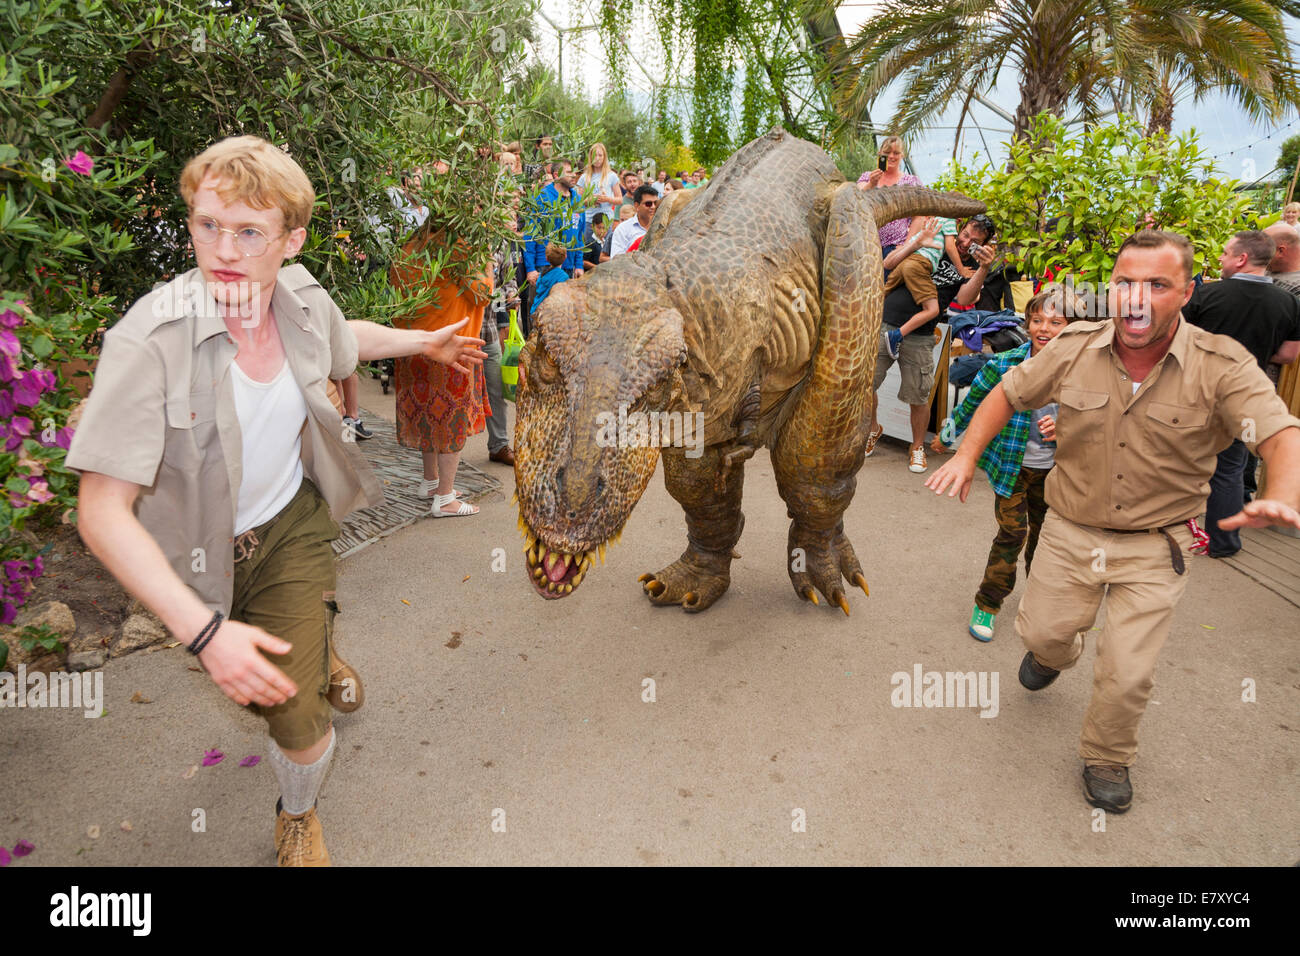 A Dinosaur on the loose (with guards) entertains children & families at the Eden Project in Bodelva, Saint Austell - Stock Image